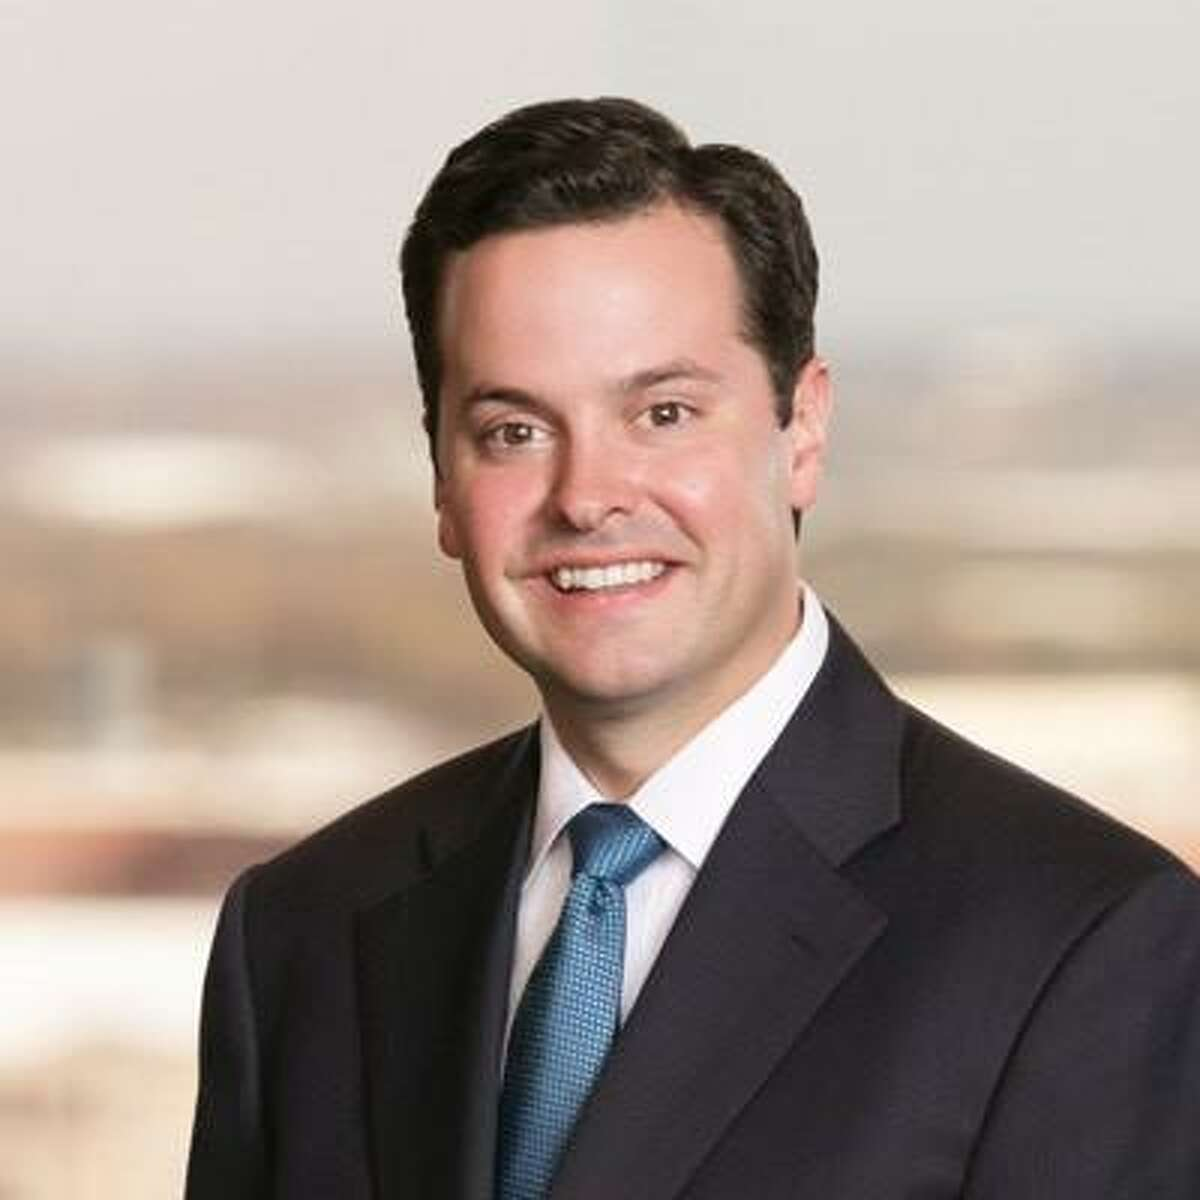 Matthew Cavenaugh is an attorney with the Houston office of the law firm Jackson Walker. Cavenaugh focuses on restructuring and bankruptcy issues for energy companies.